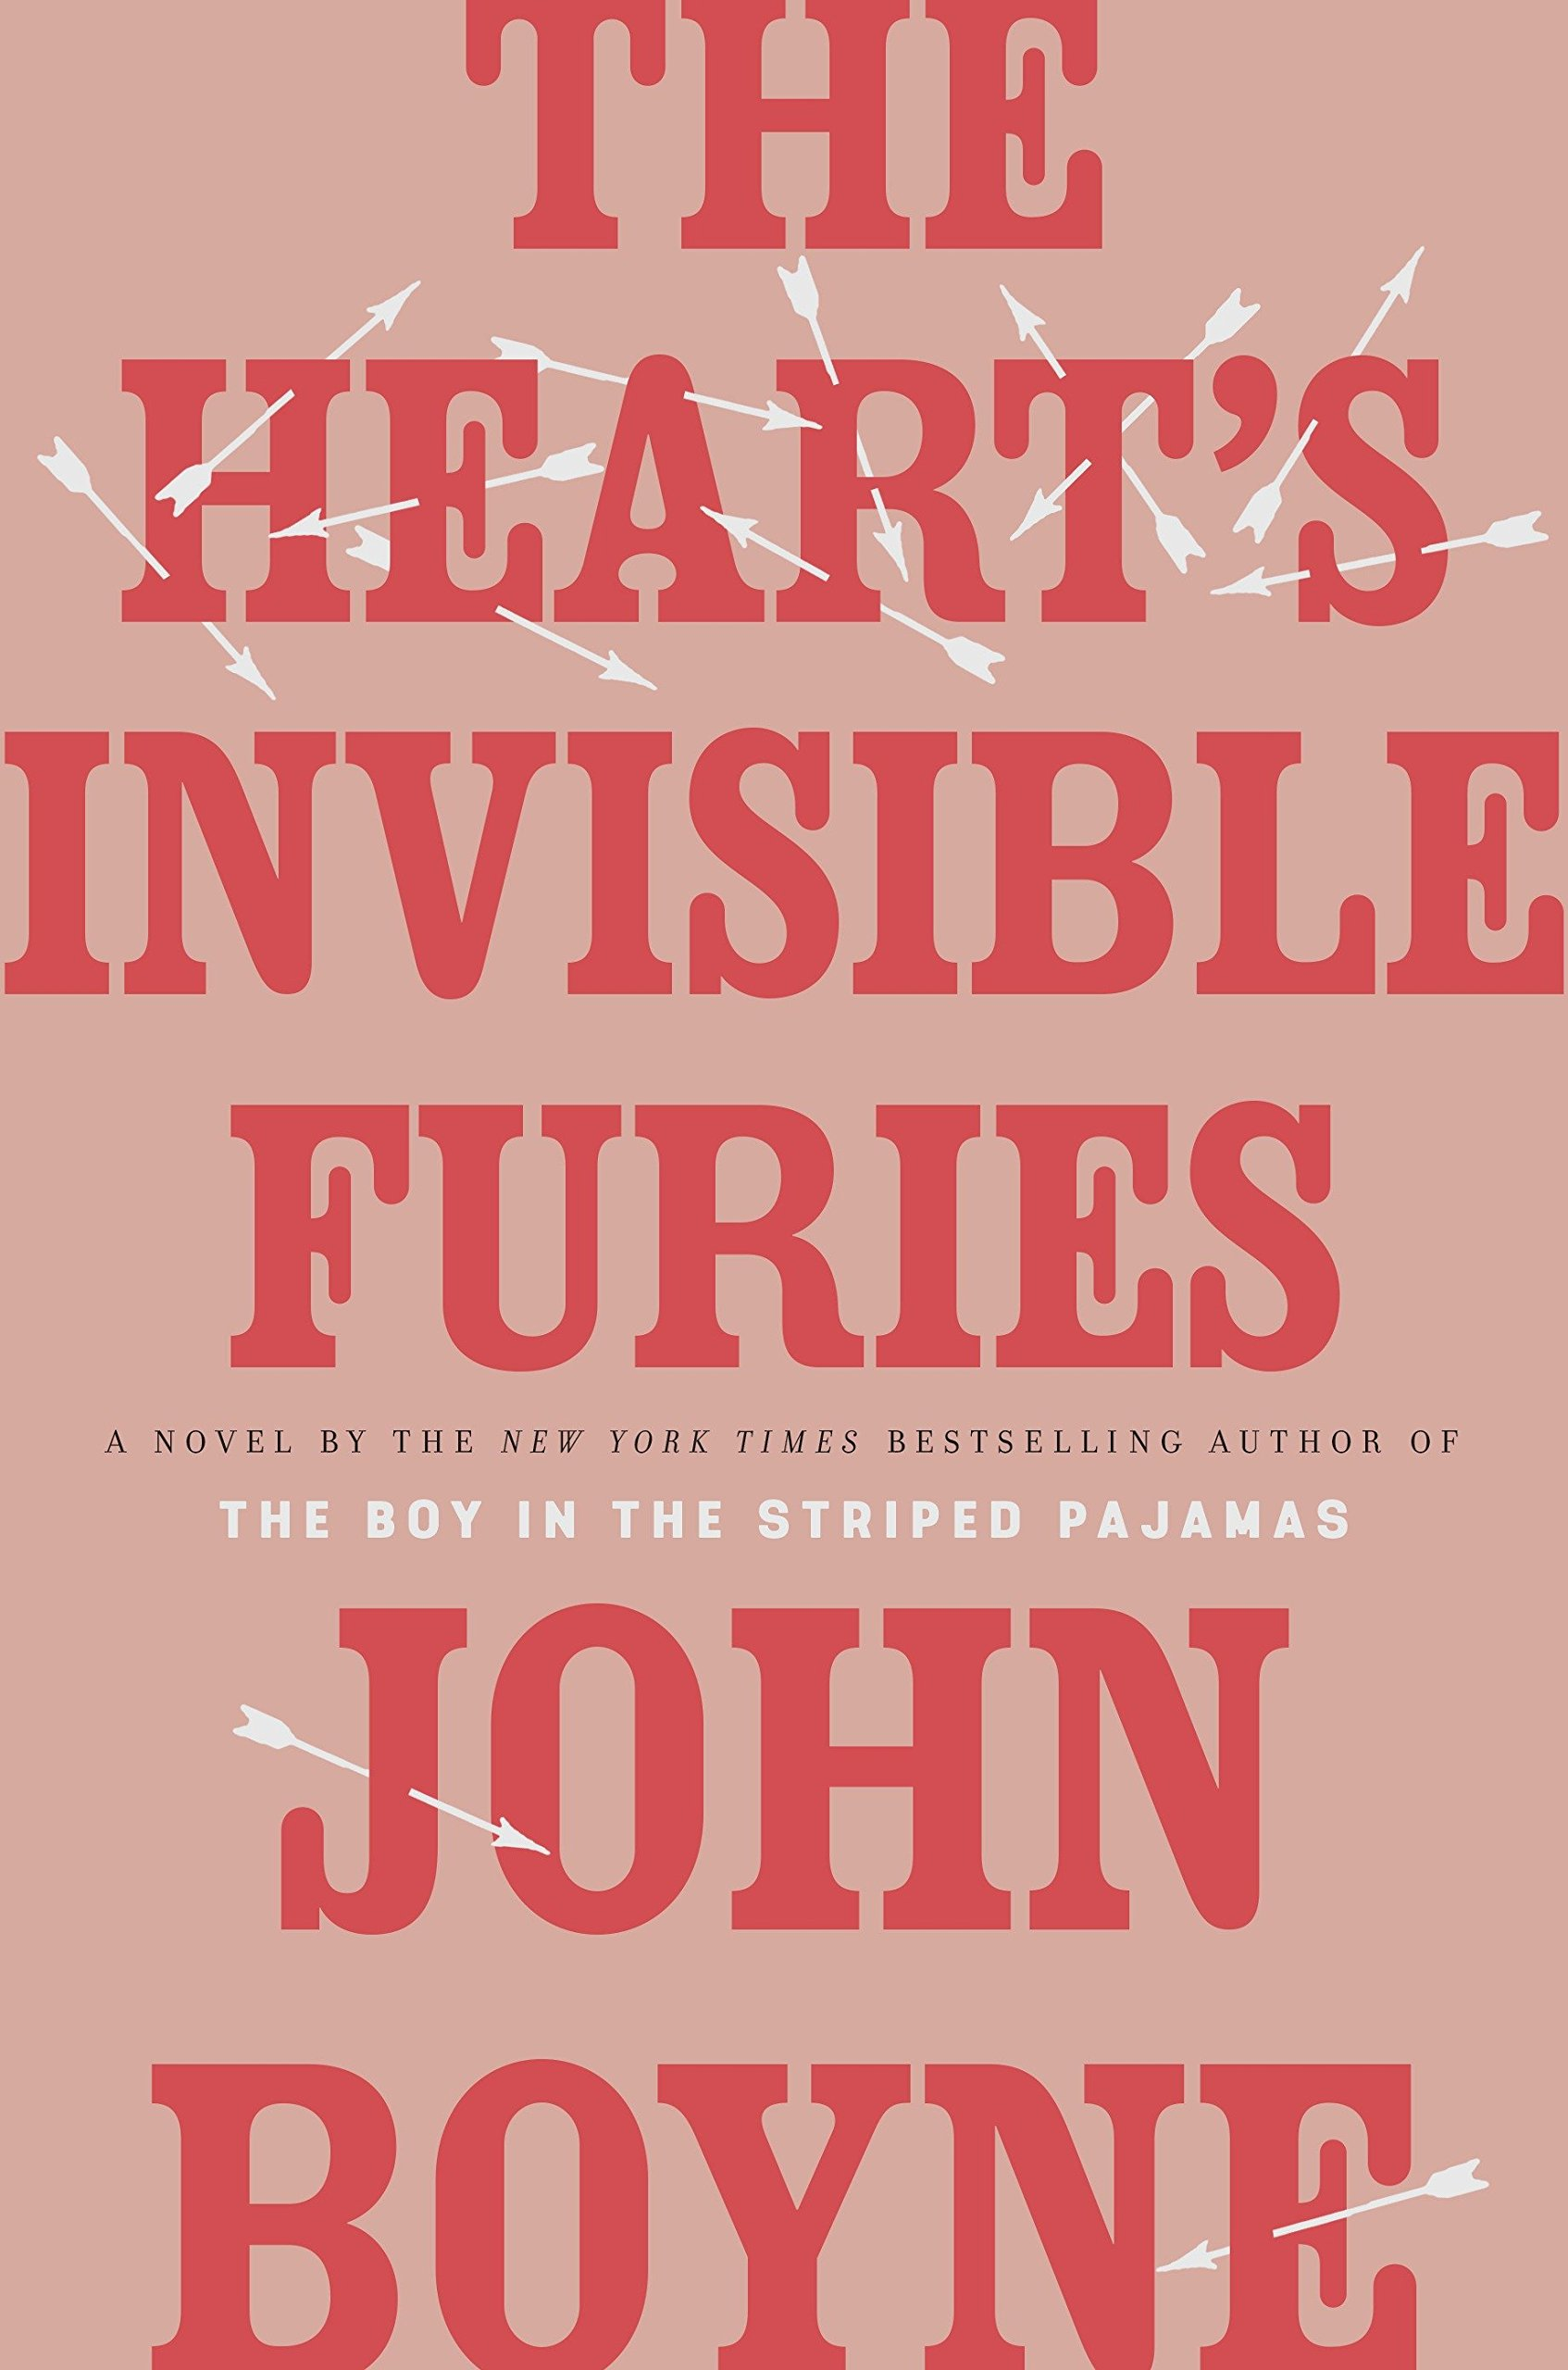 Pink cover with red letters, text